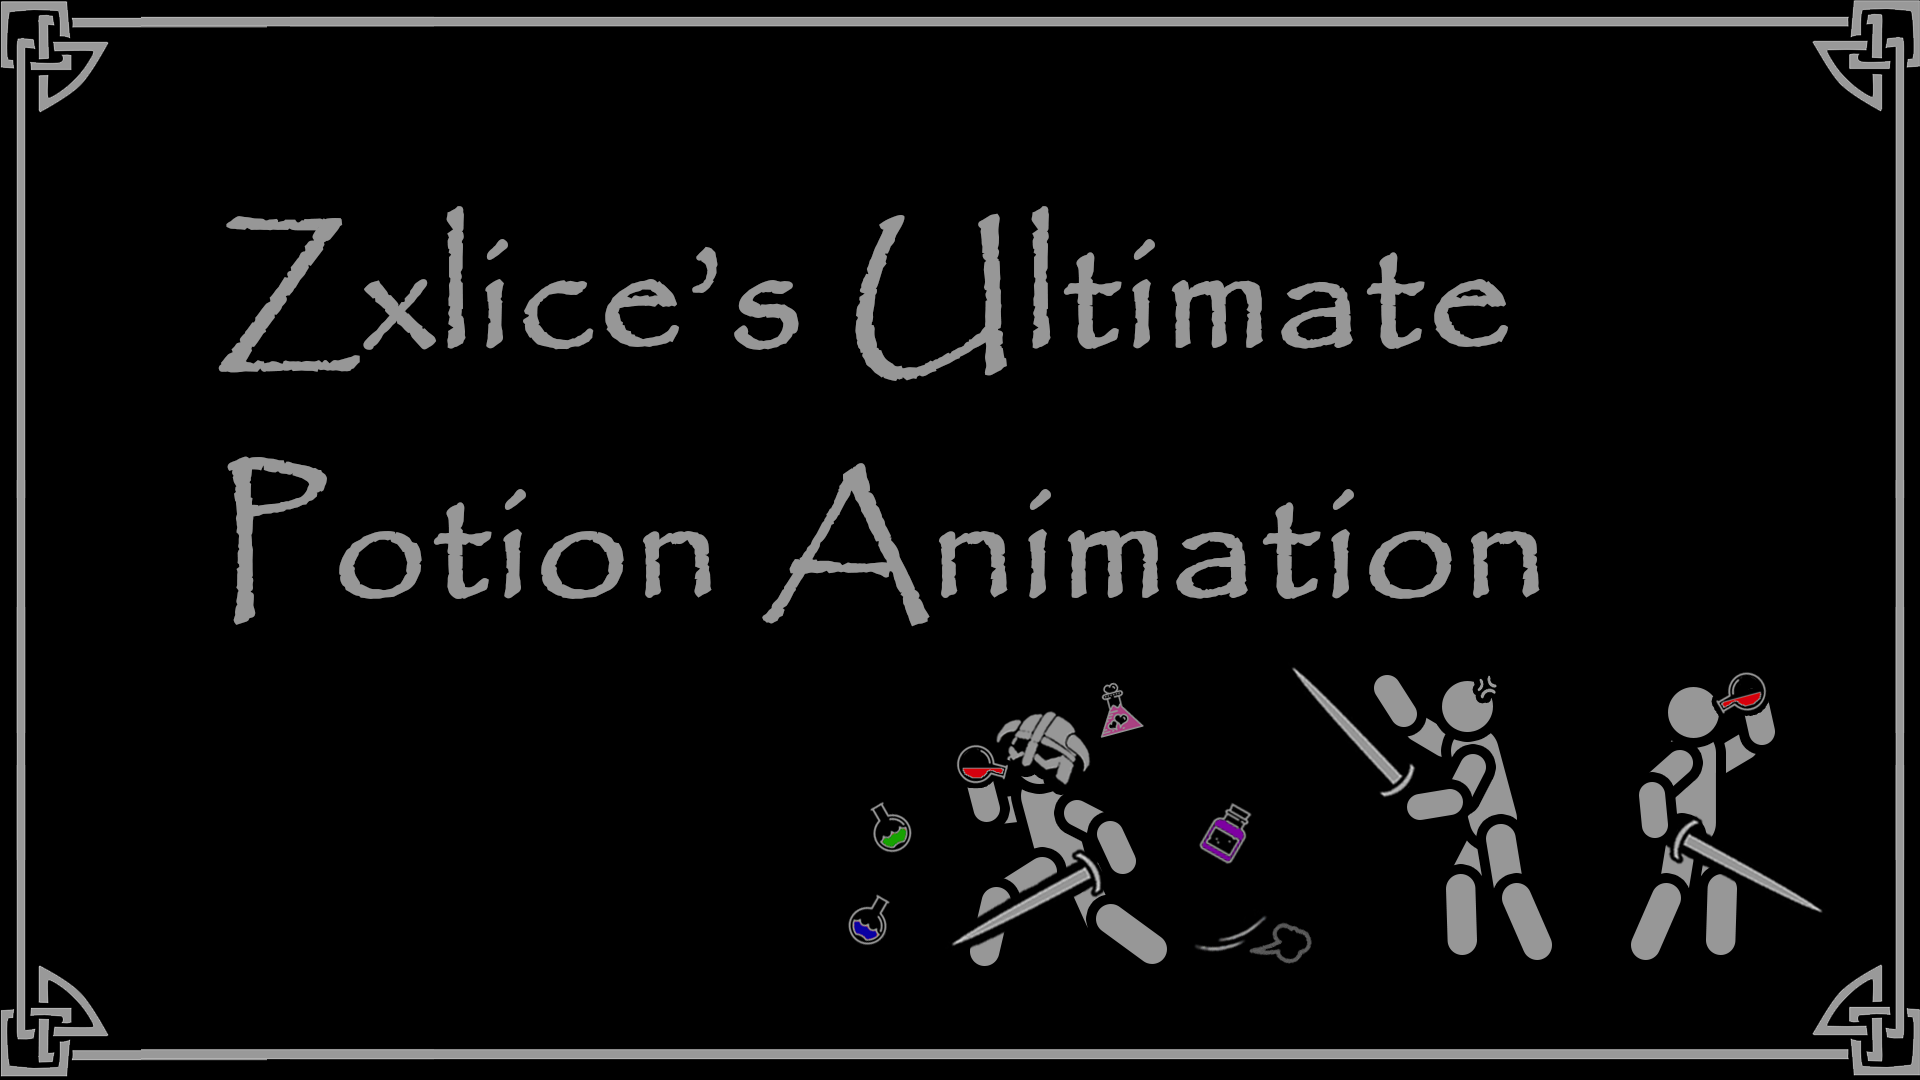 zxlice's ultimate potion animation - ZUP